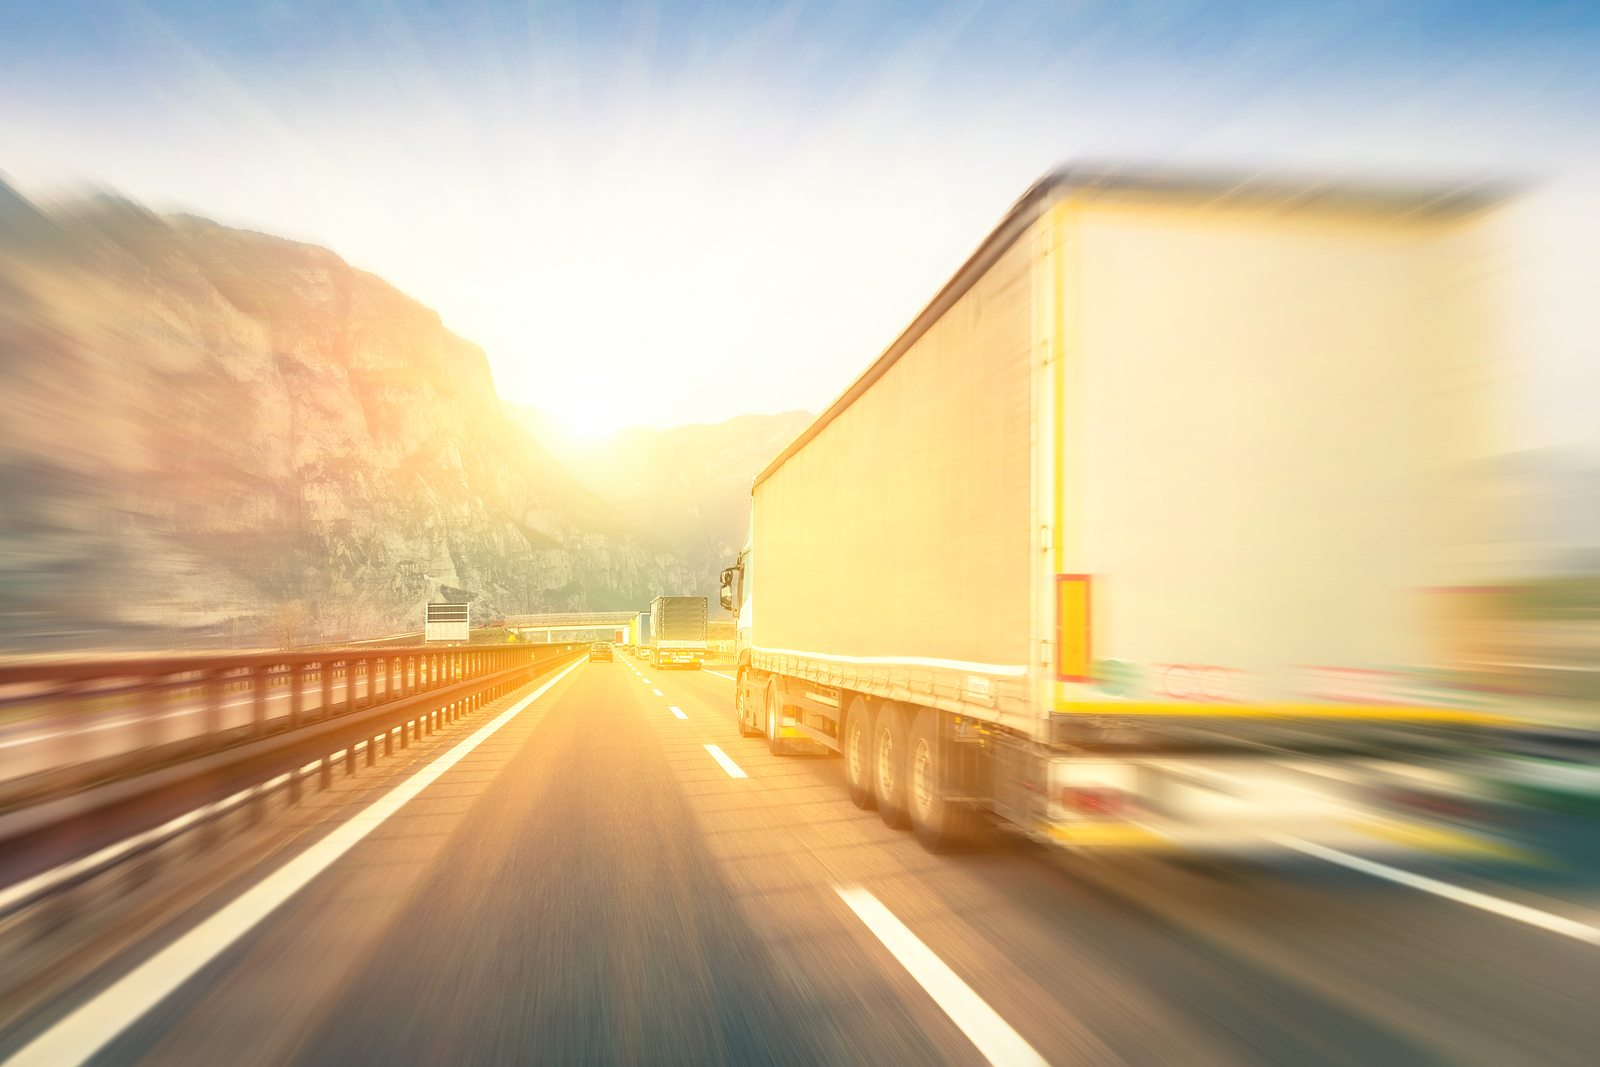 https://live-crossroads-elf.pantheonsite.io/sites/default/files/revslider/image/bigstock-Generic-Semi-Trucks-Speeding-O-95099174.jpg